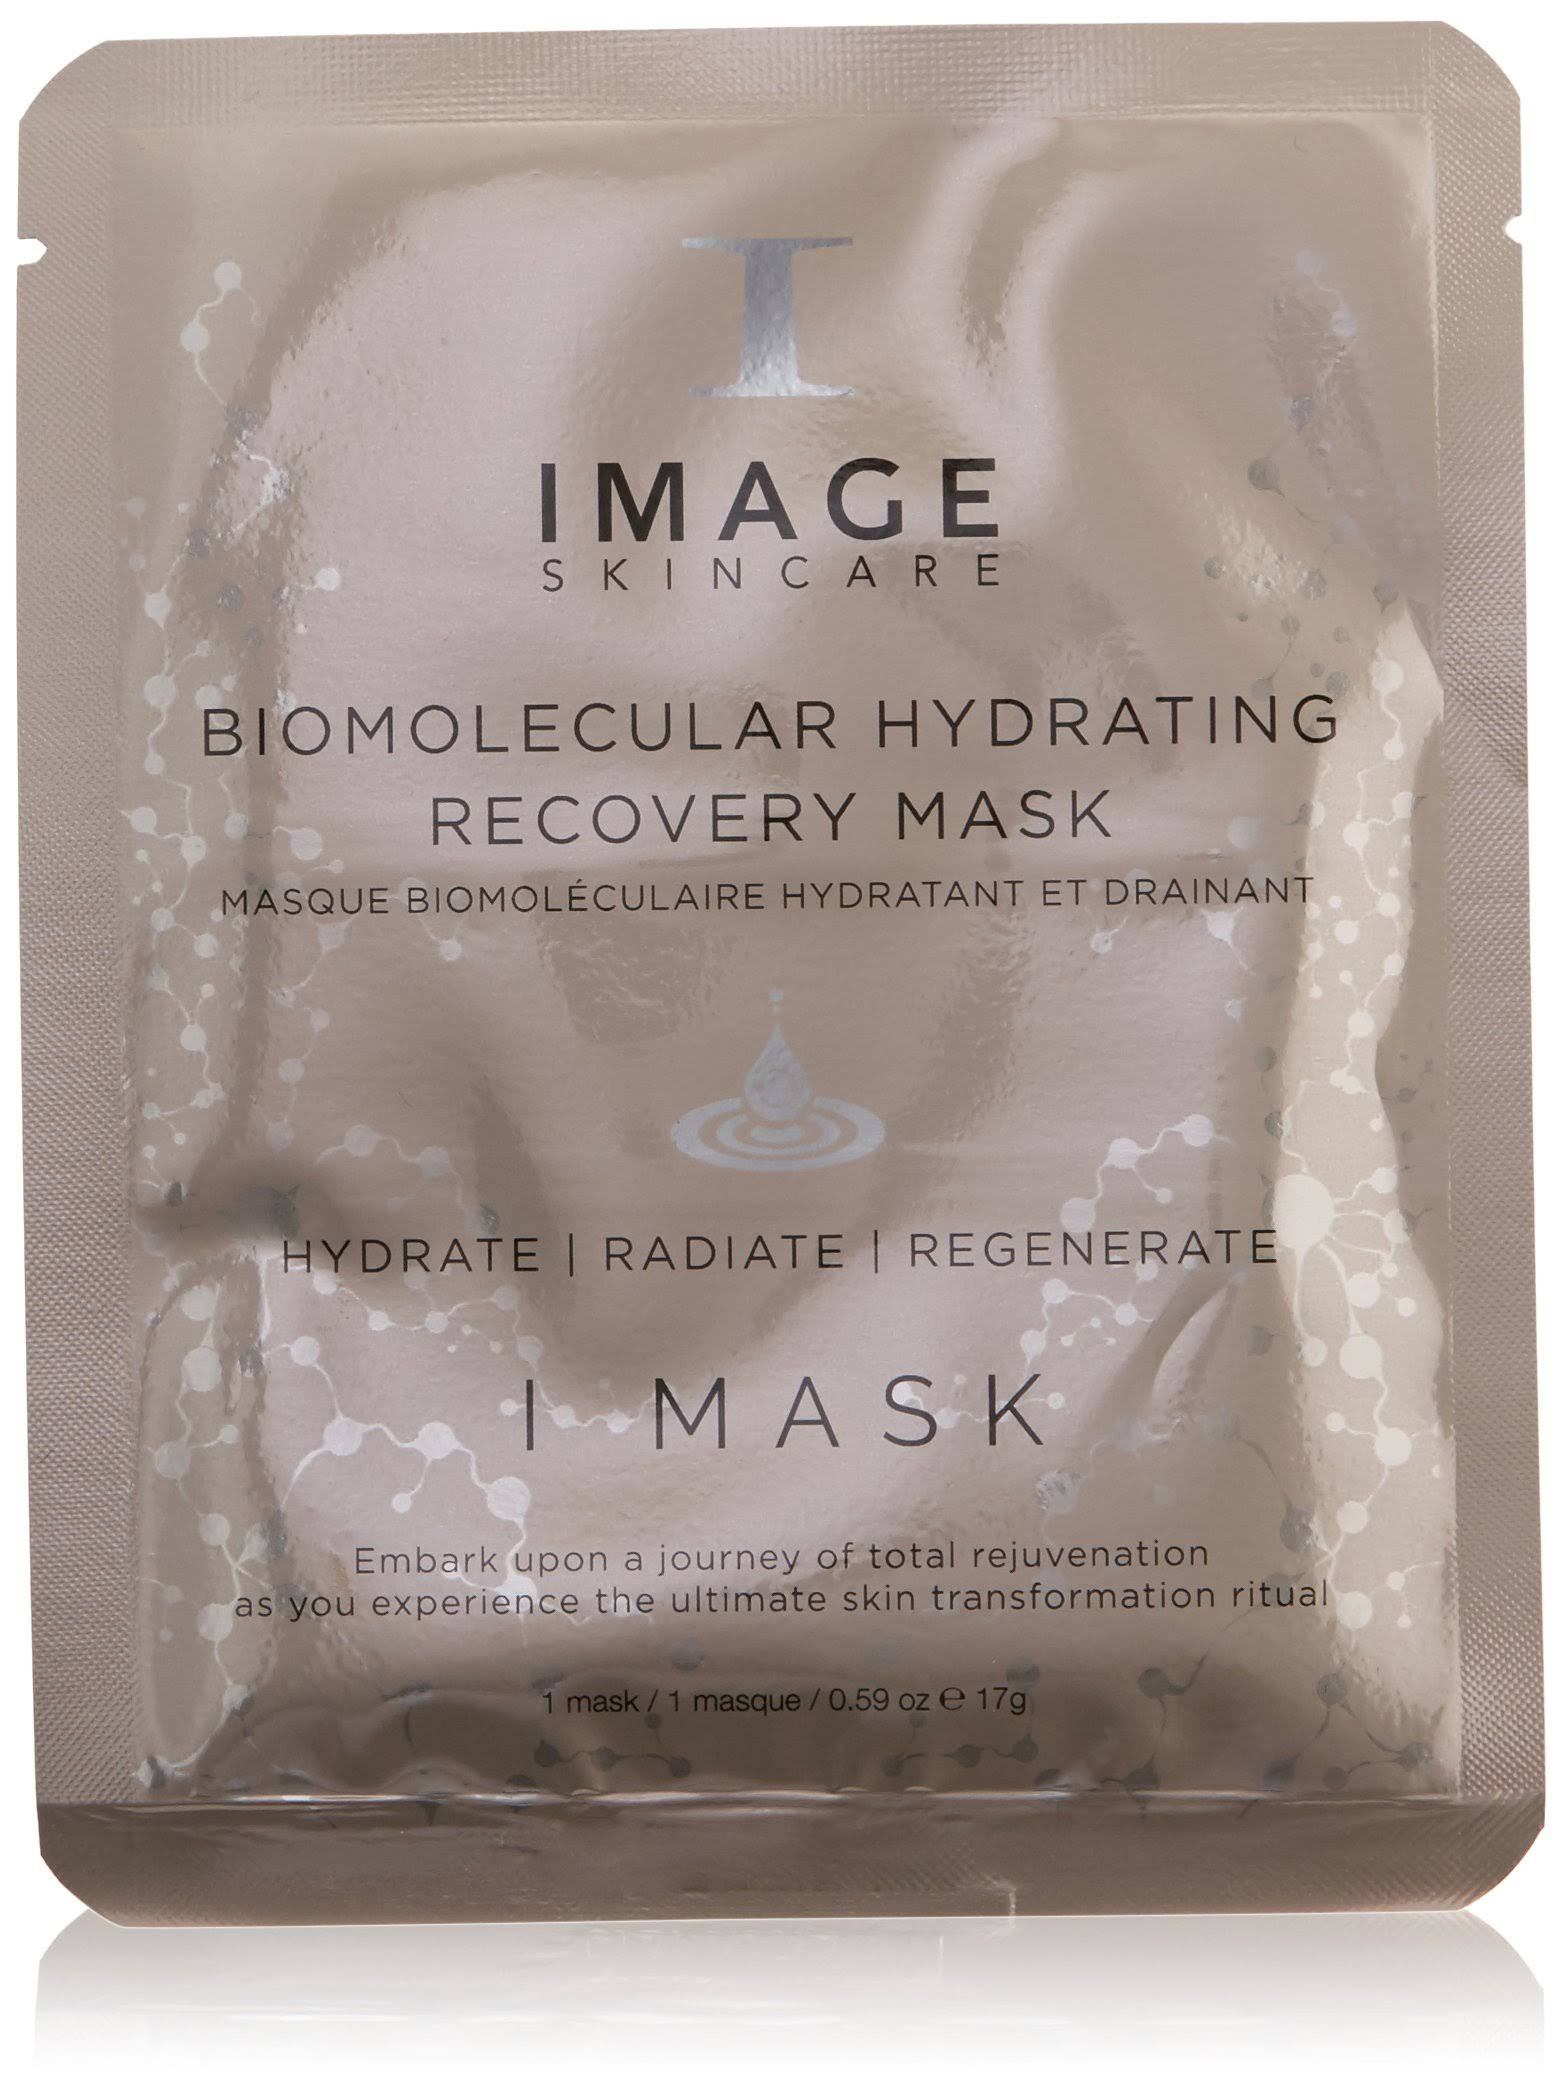 Image Skincare Biomolecular Hydrating Recovery Mask - 17g